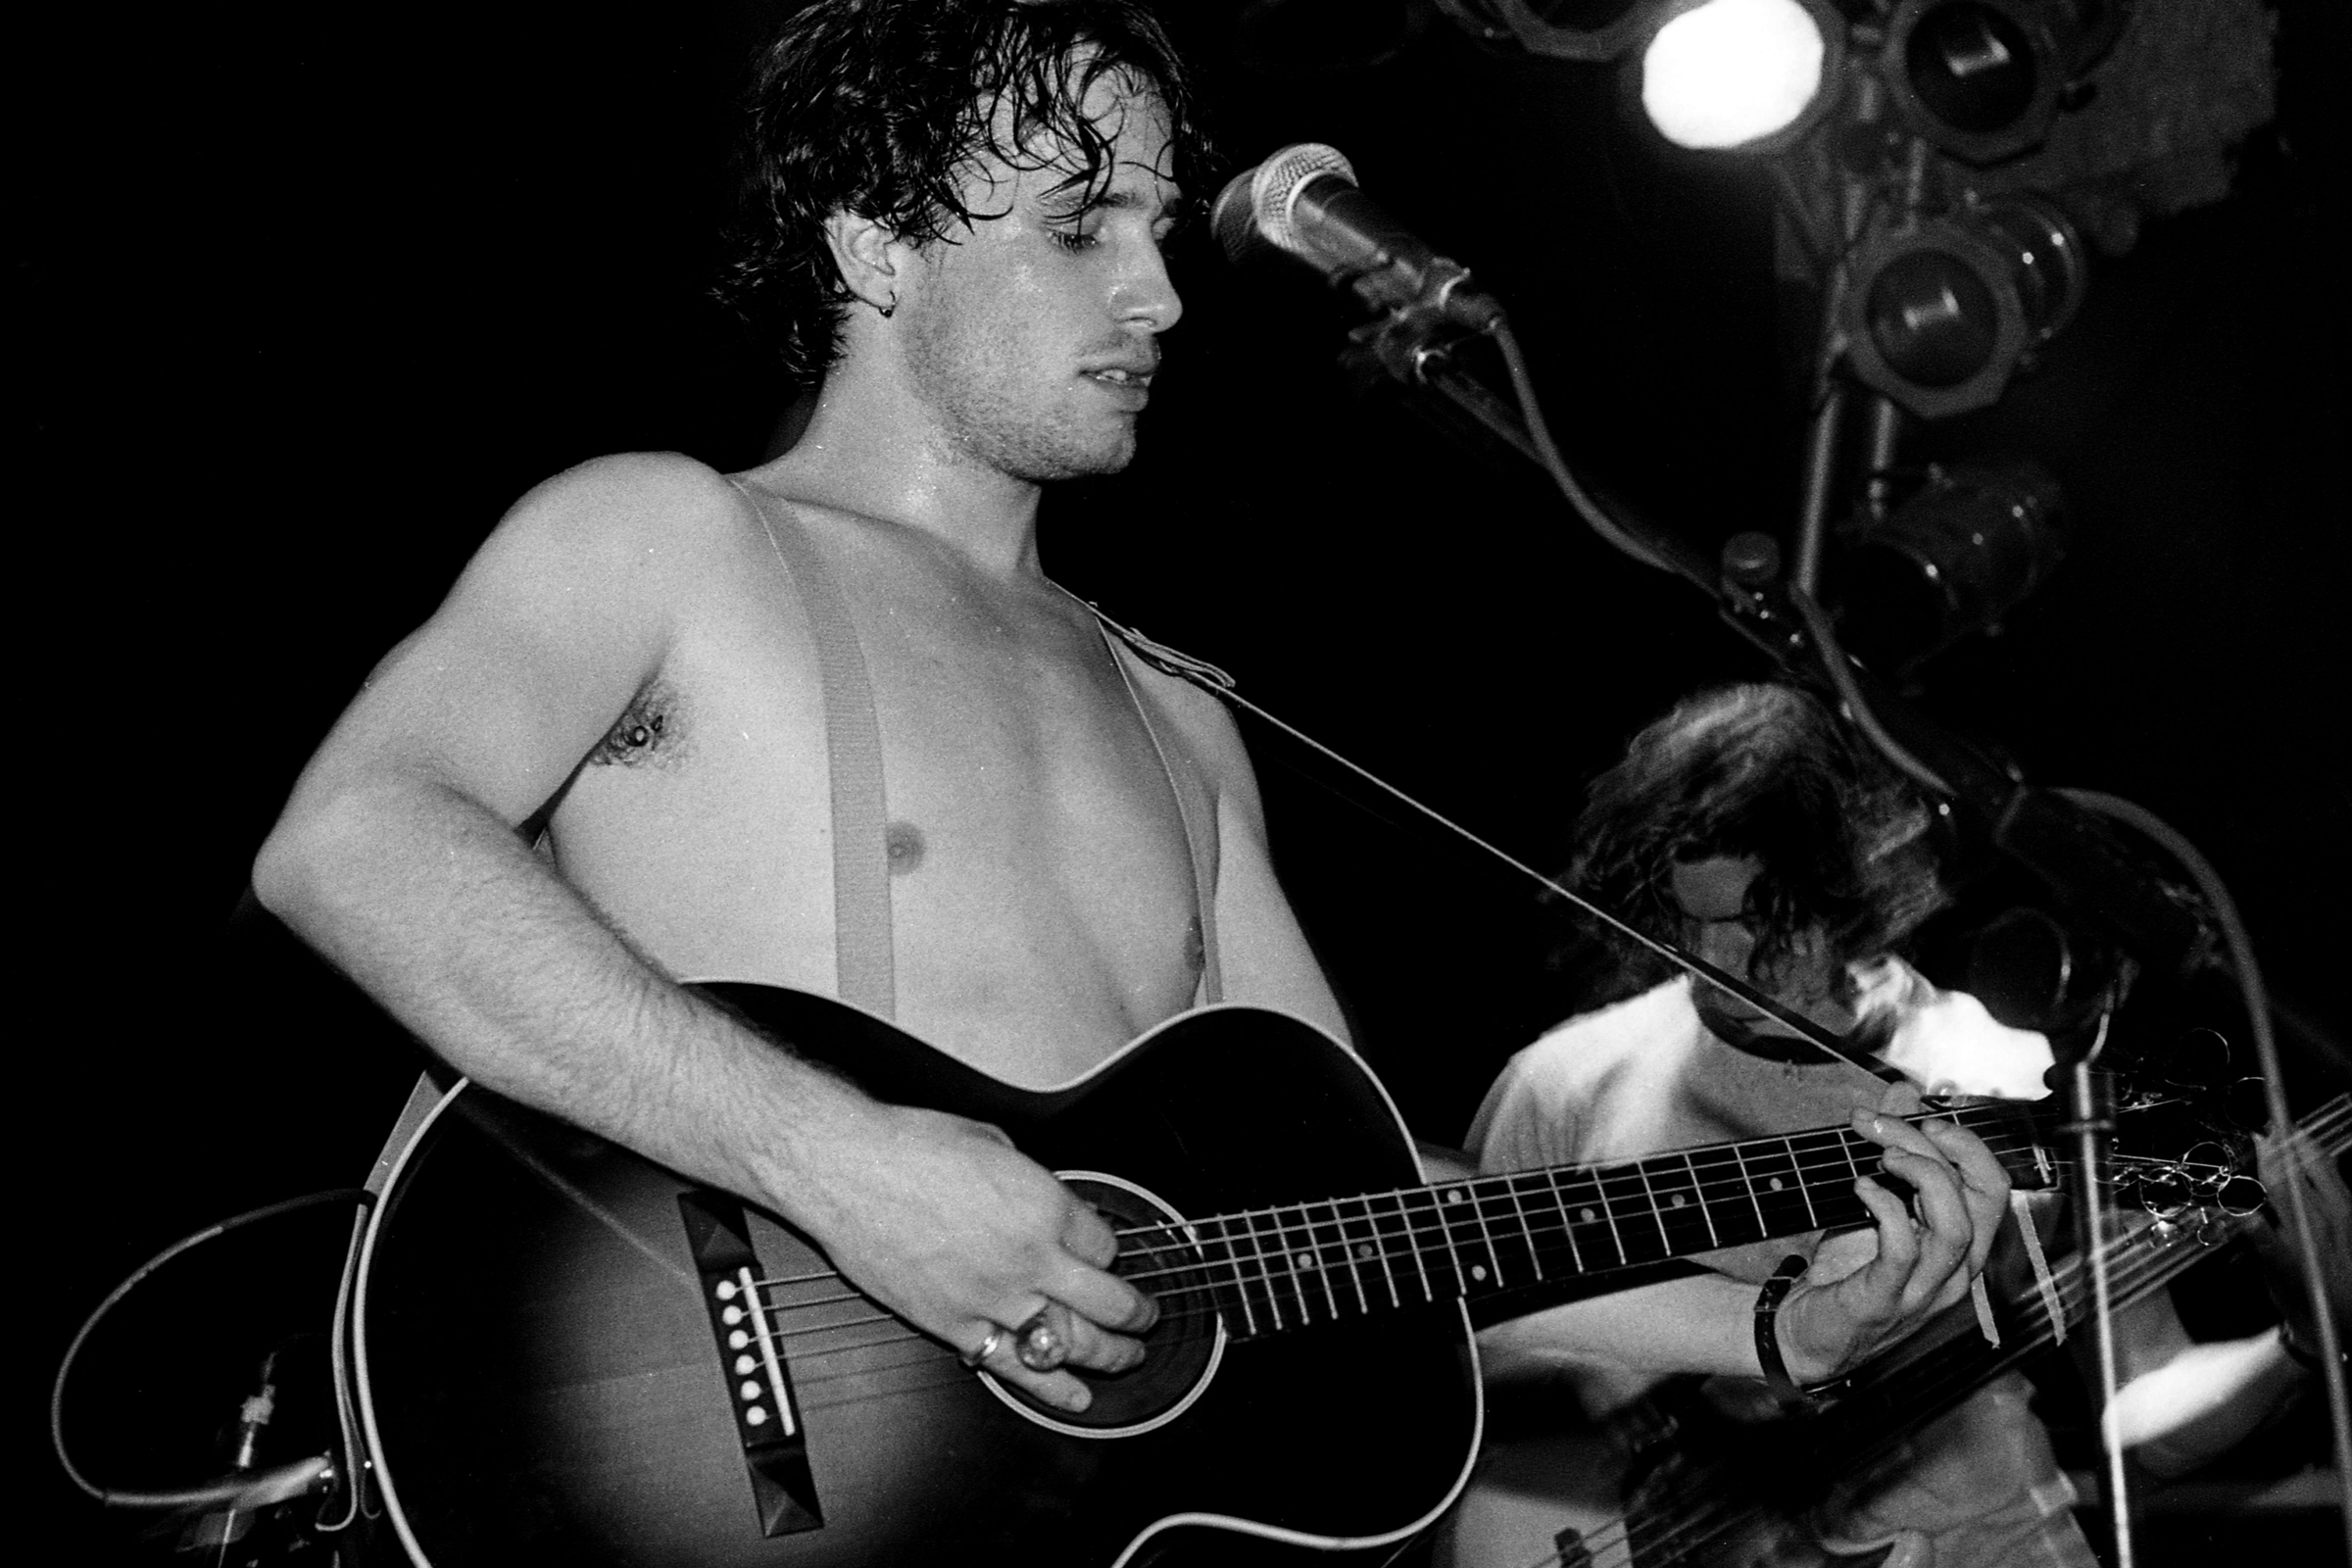 Jeff Buckley's 'Grace': 10 Things You Didn't Know